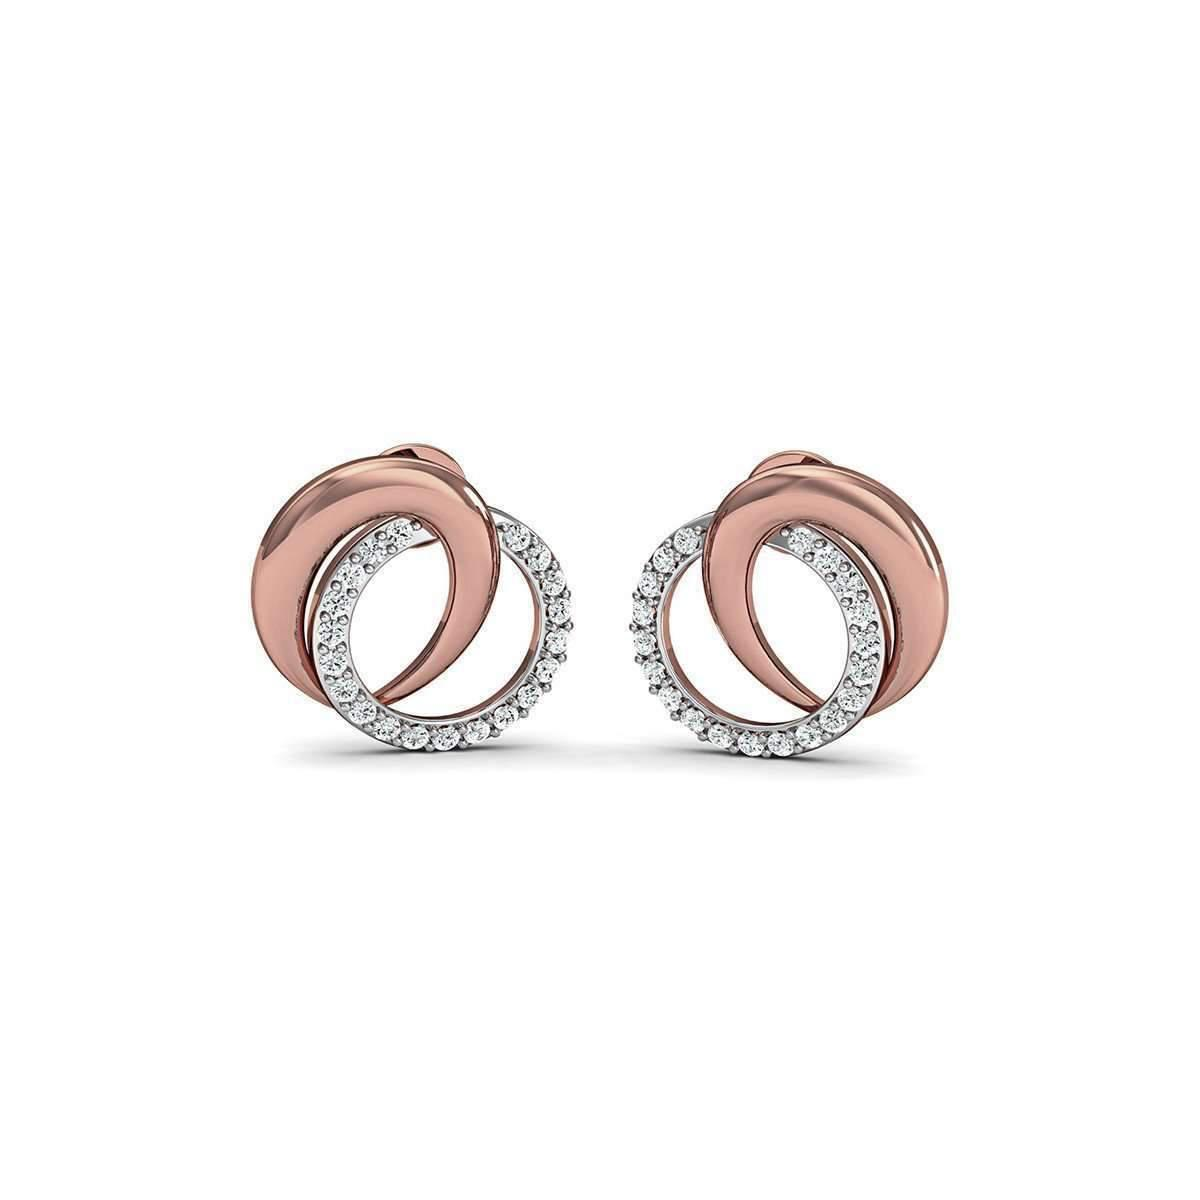 Diamoire Jewels Premium Diamond Earrings Nature Inspired in 18kt Rose Gold